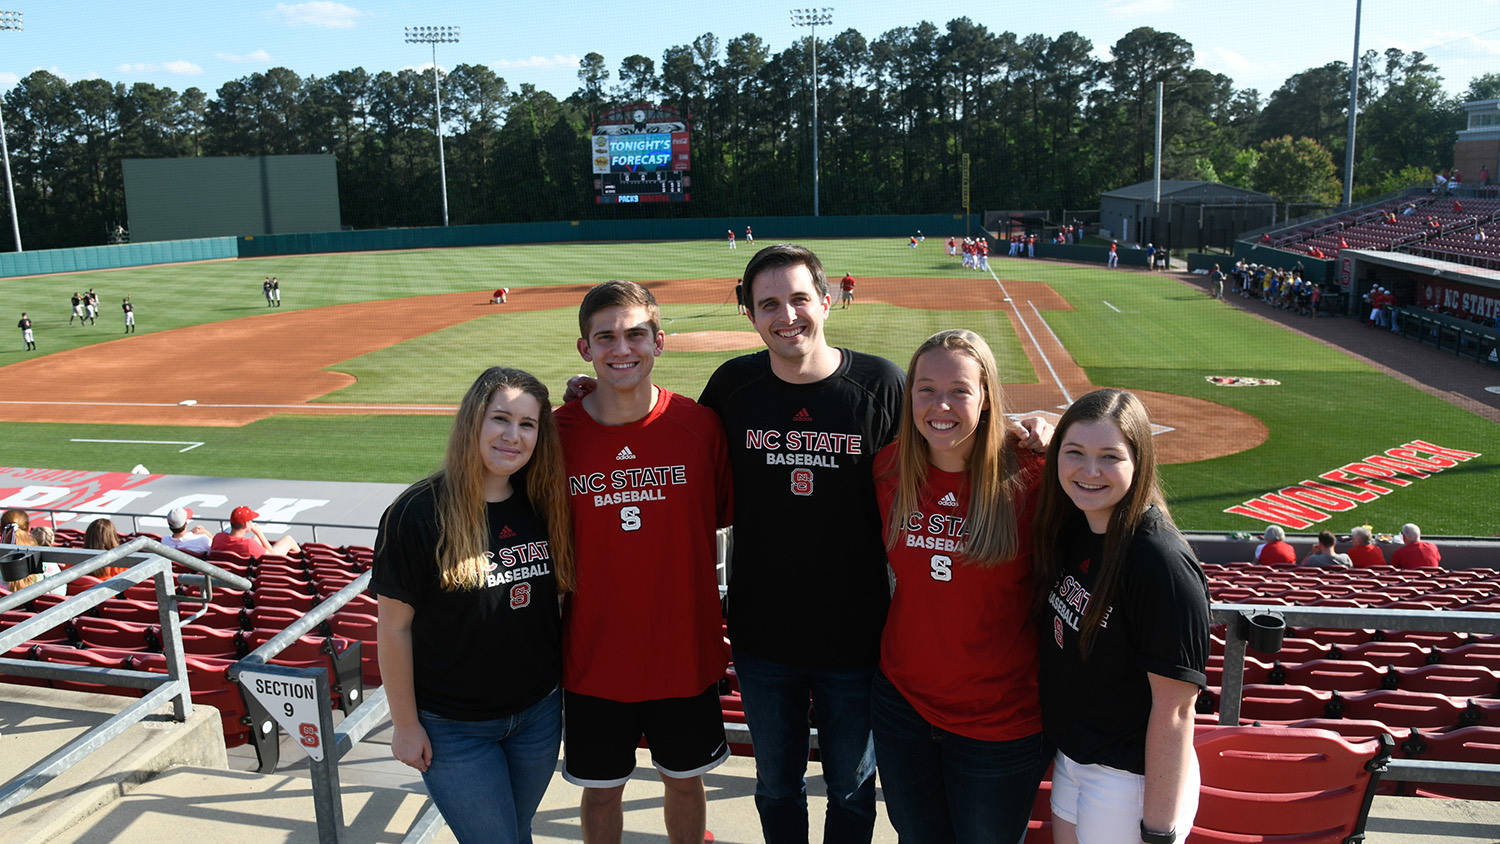 Five smiling students in front of NC State's baseball field